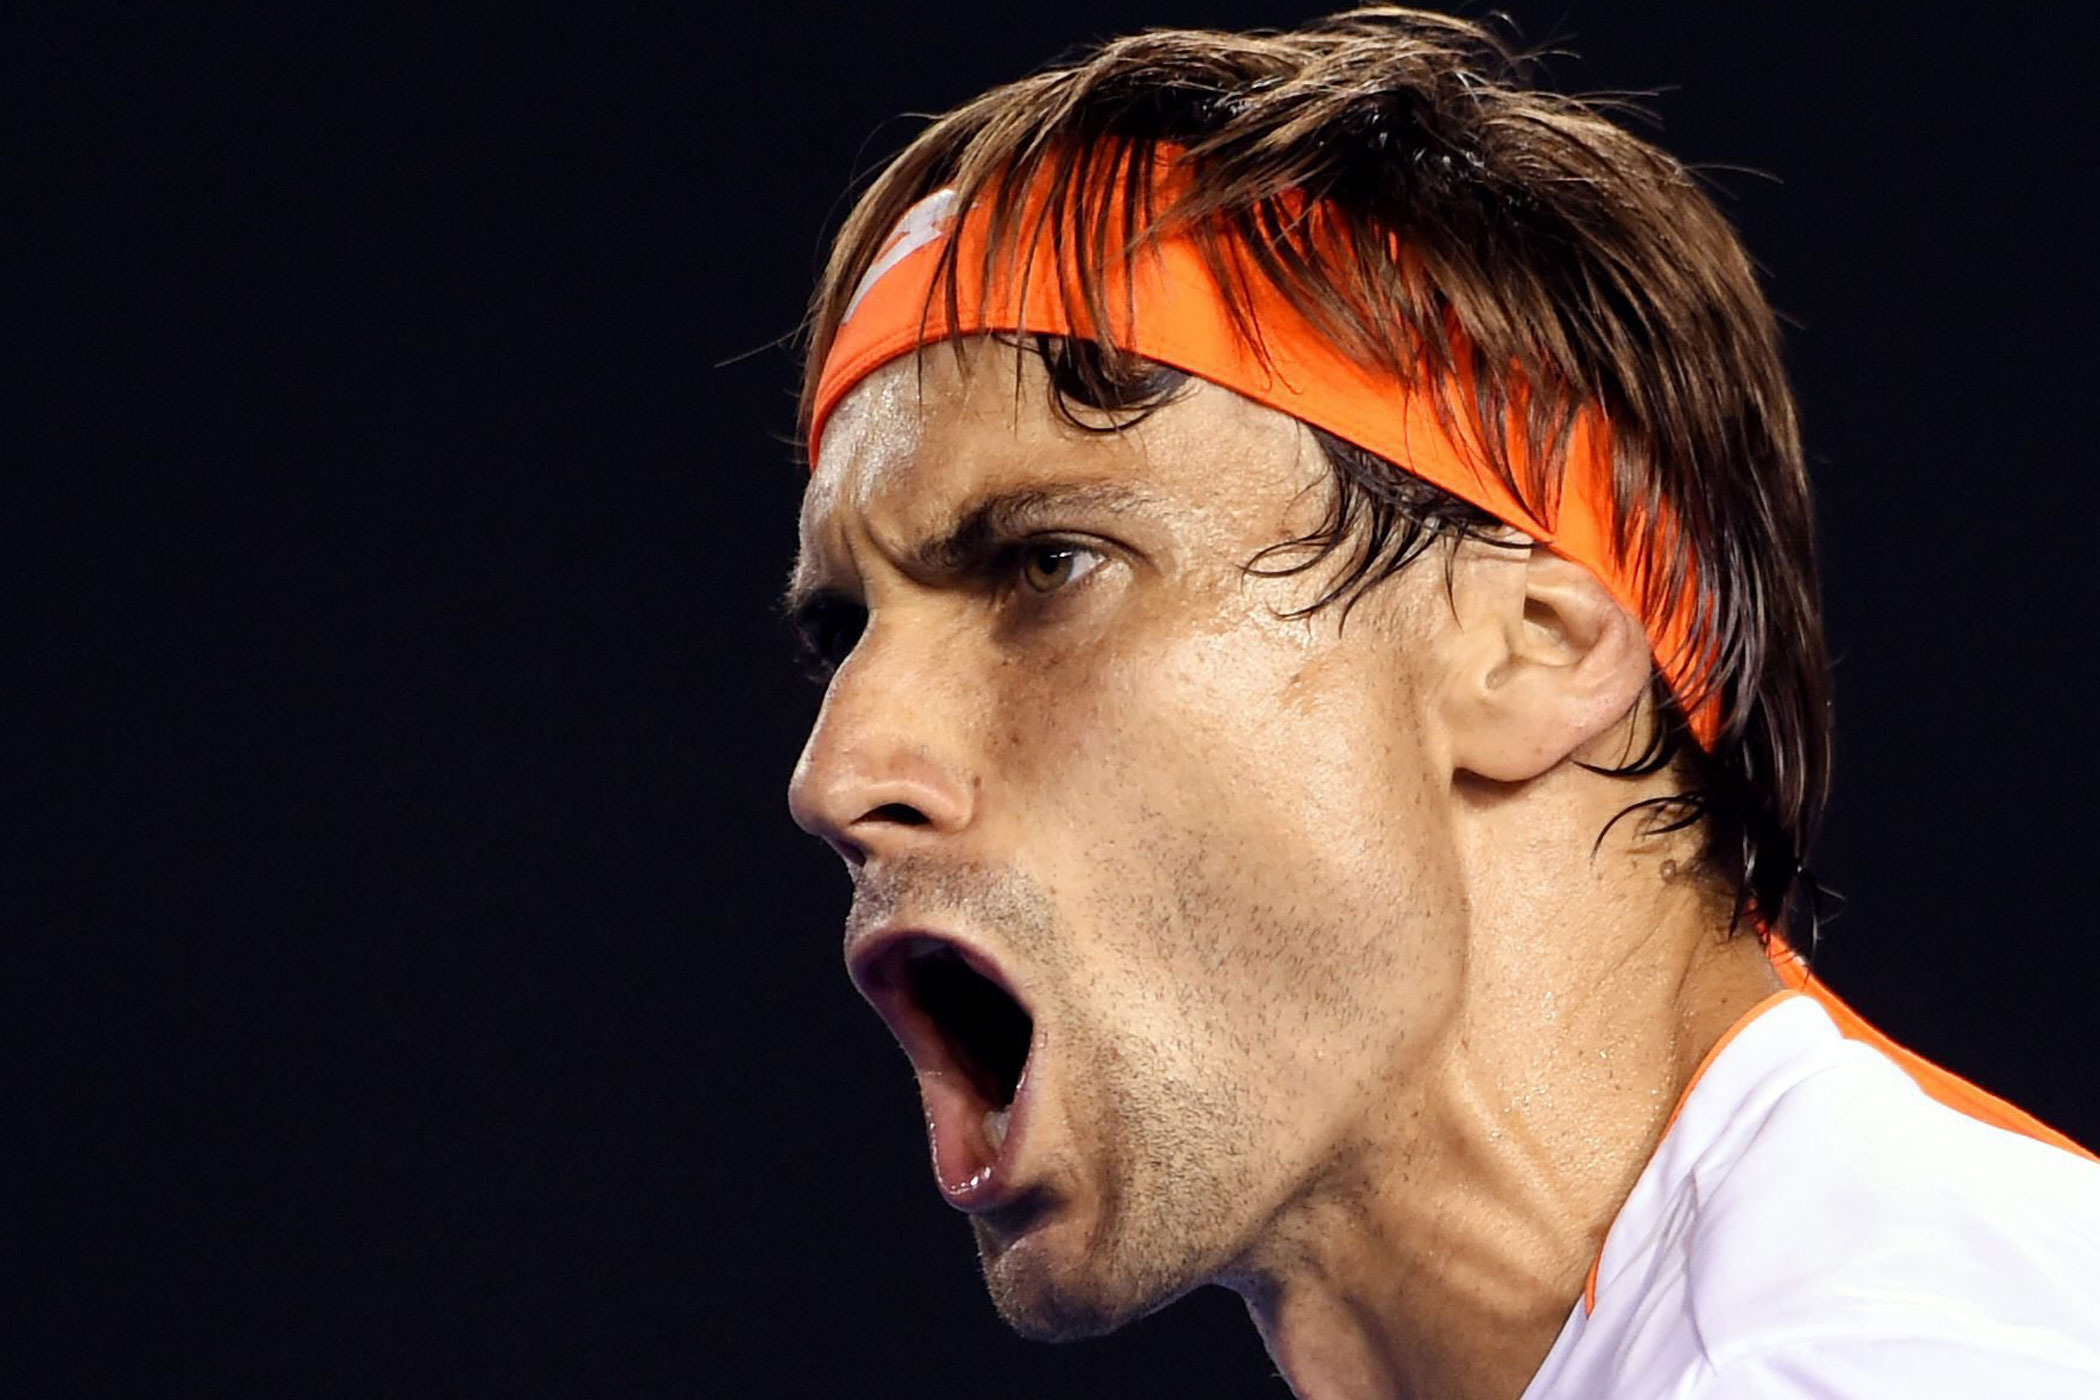 Spain's David Ferrer of Spain celebrates during his quarter final match against Britain's Andy Murray on Jan. 27.